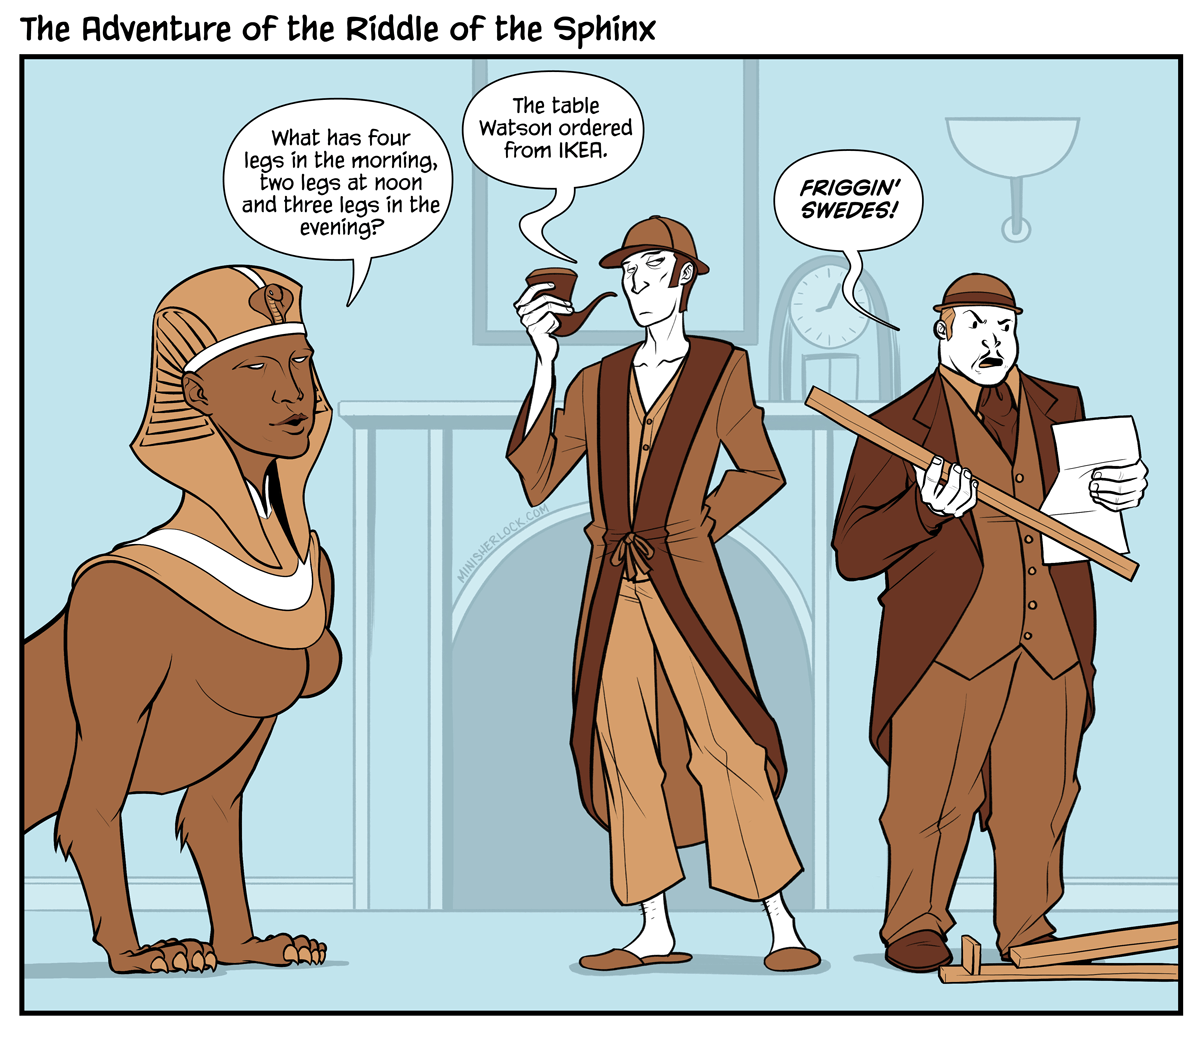 The Adventure of the Riddle of the Sphinx